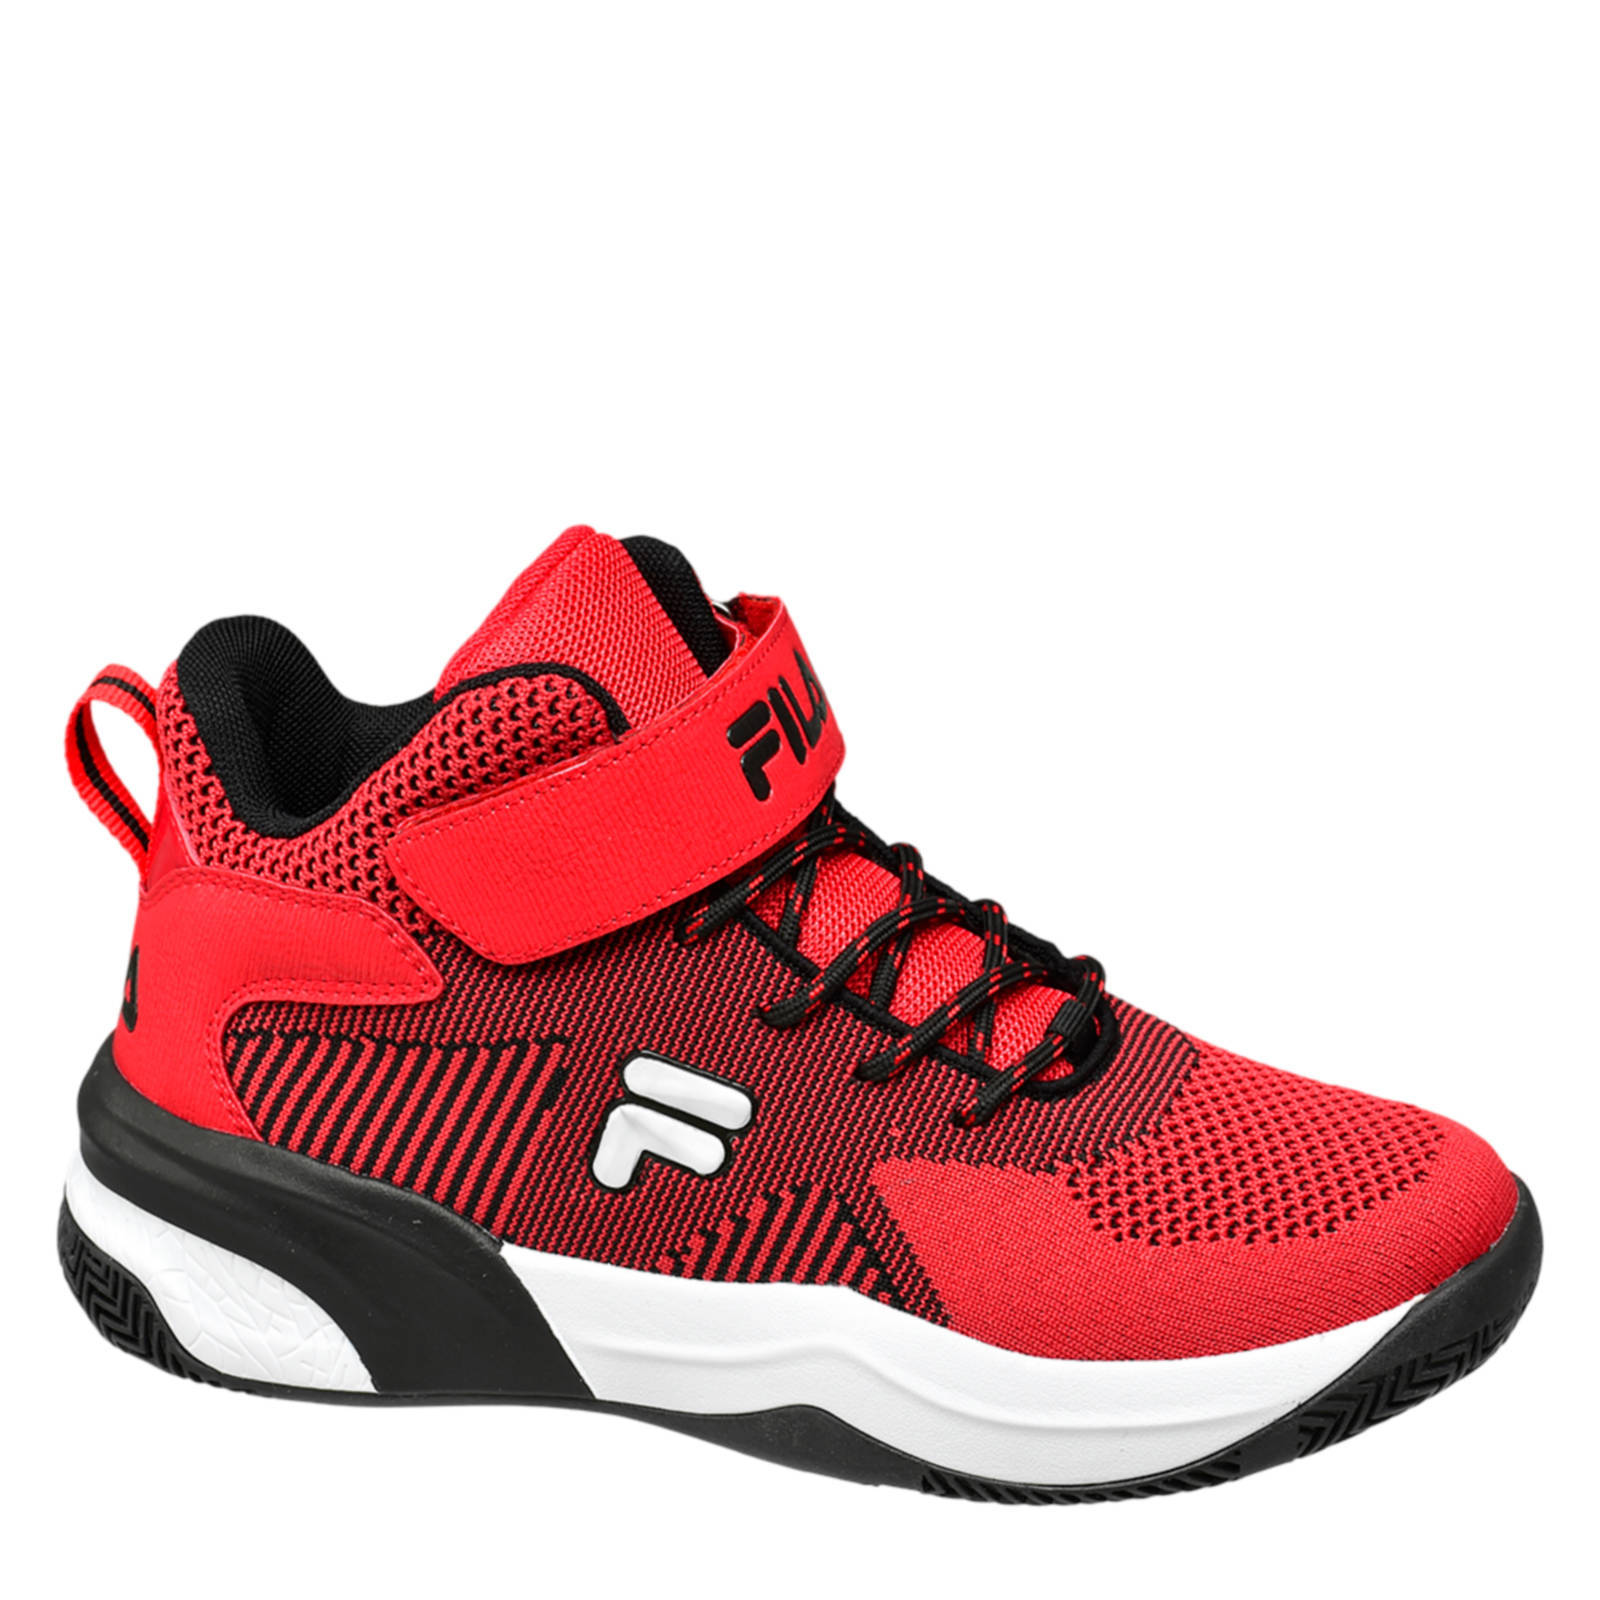 red fila shoes | Sneakers fashion, Nice shoes, Shoe boots